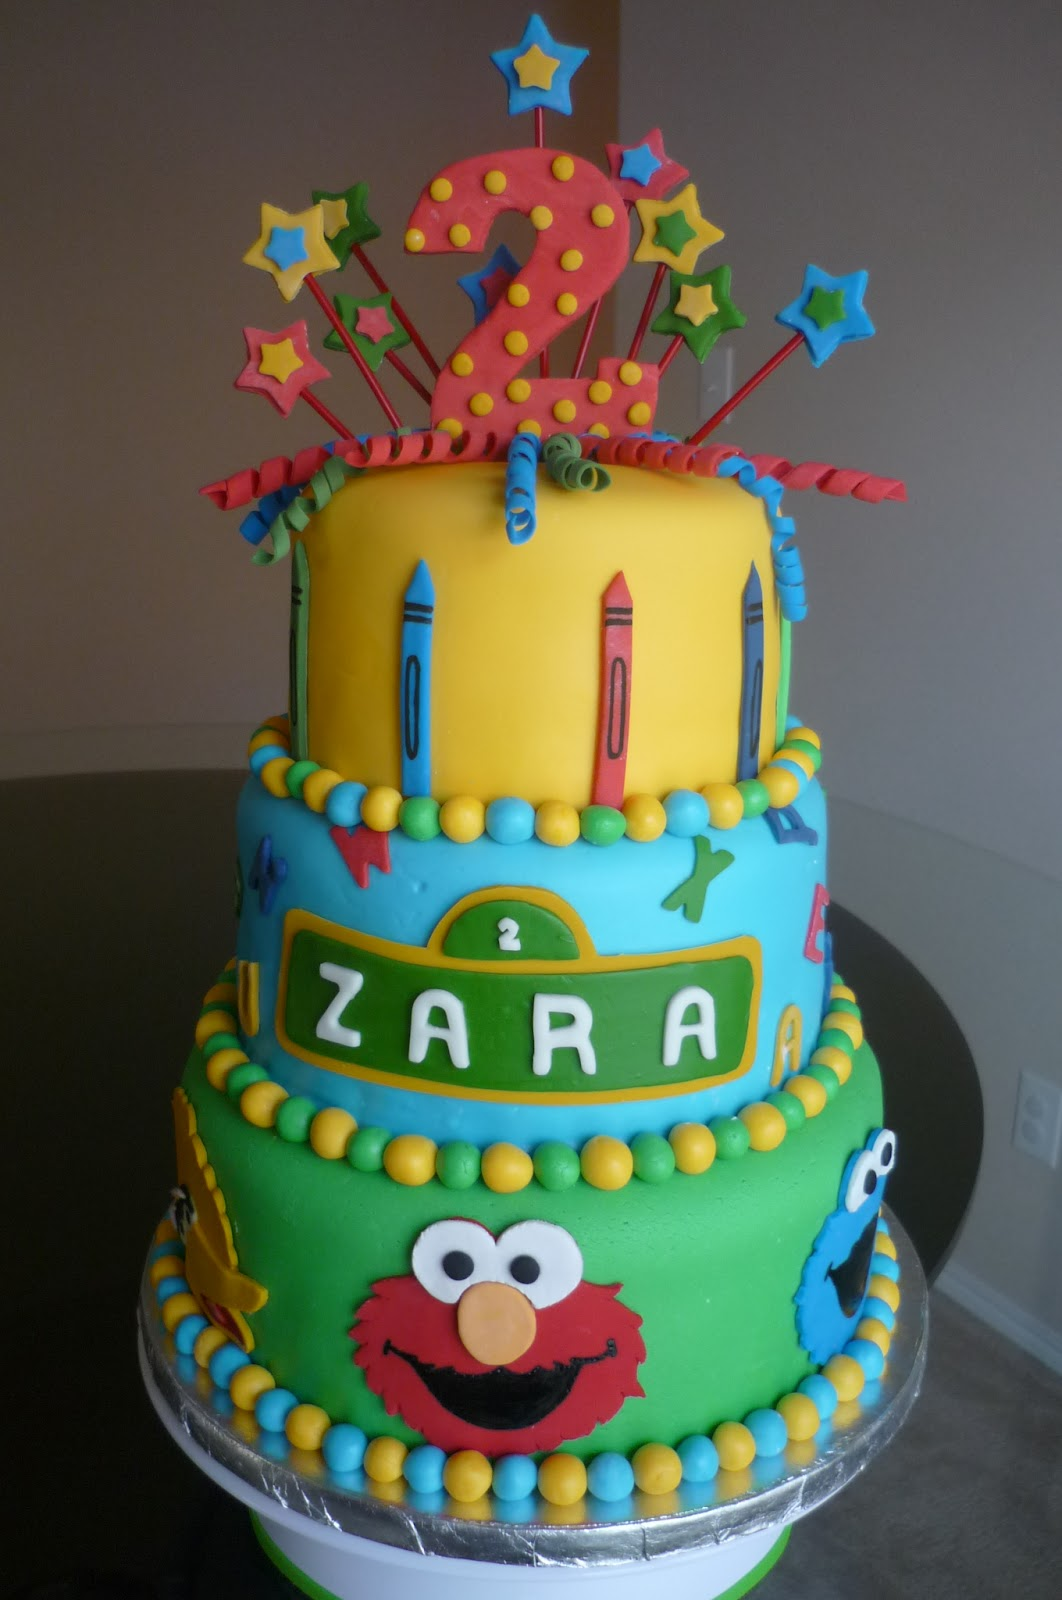 Birthday Cakes With Name N Photo ~ Cakes n bakes sesame street birthday cake